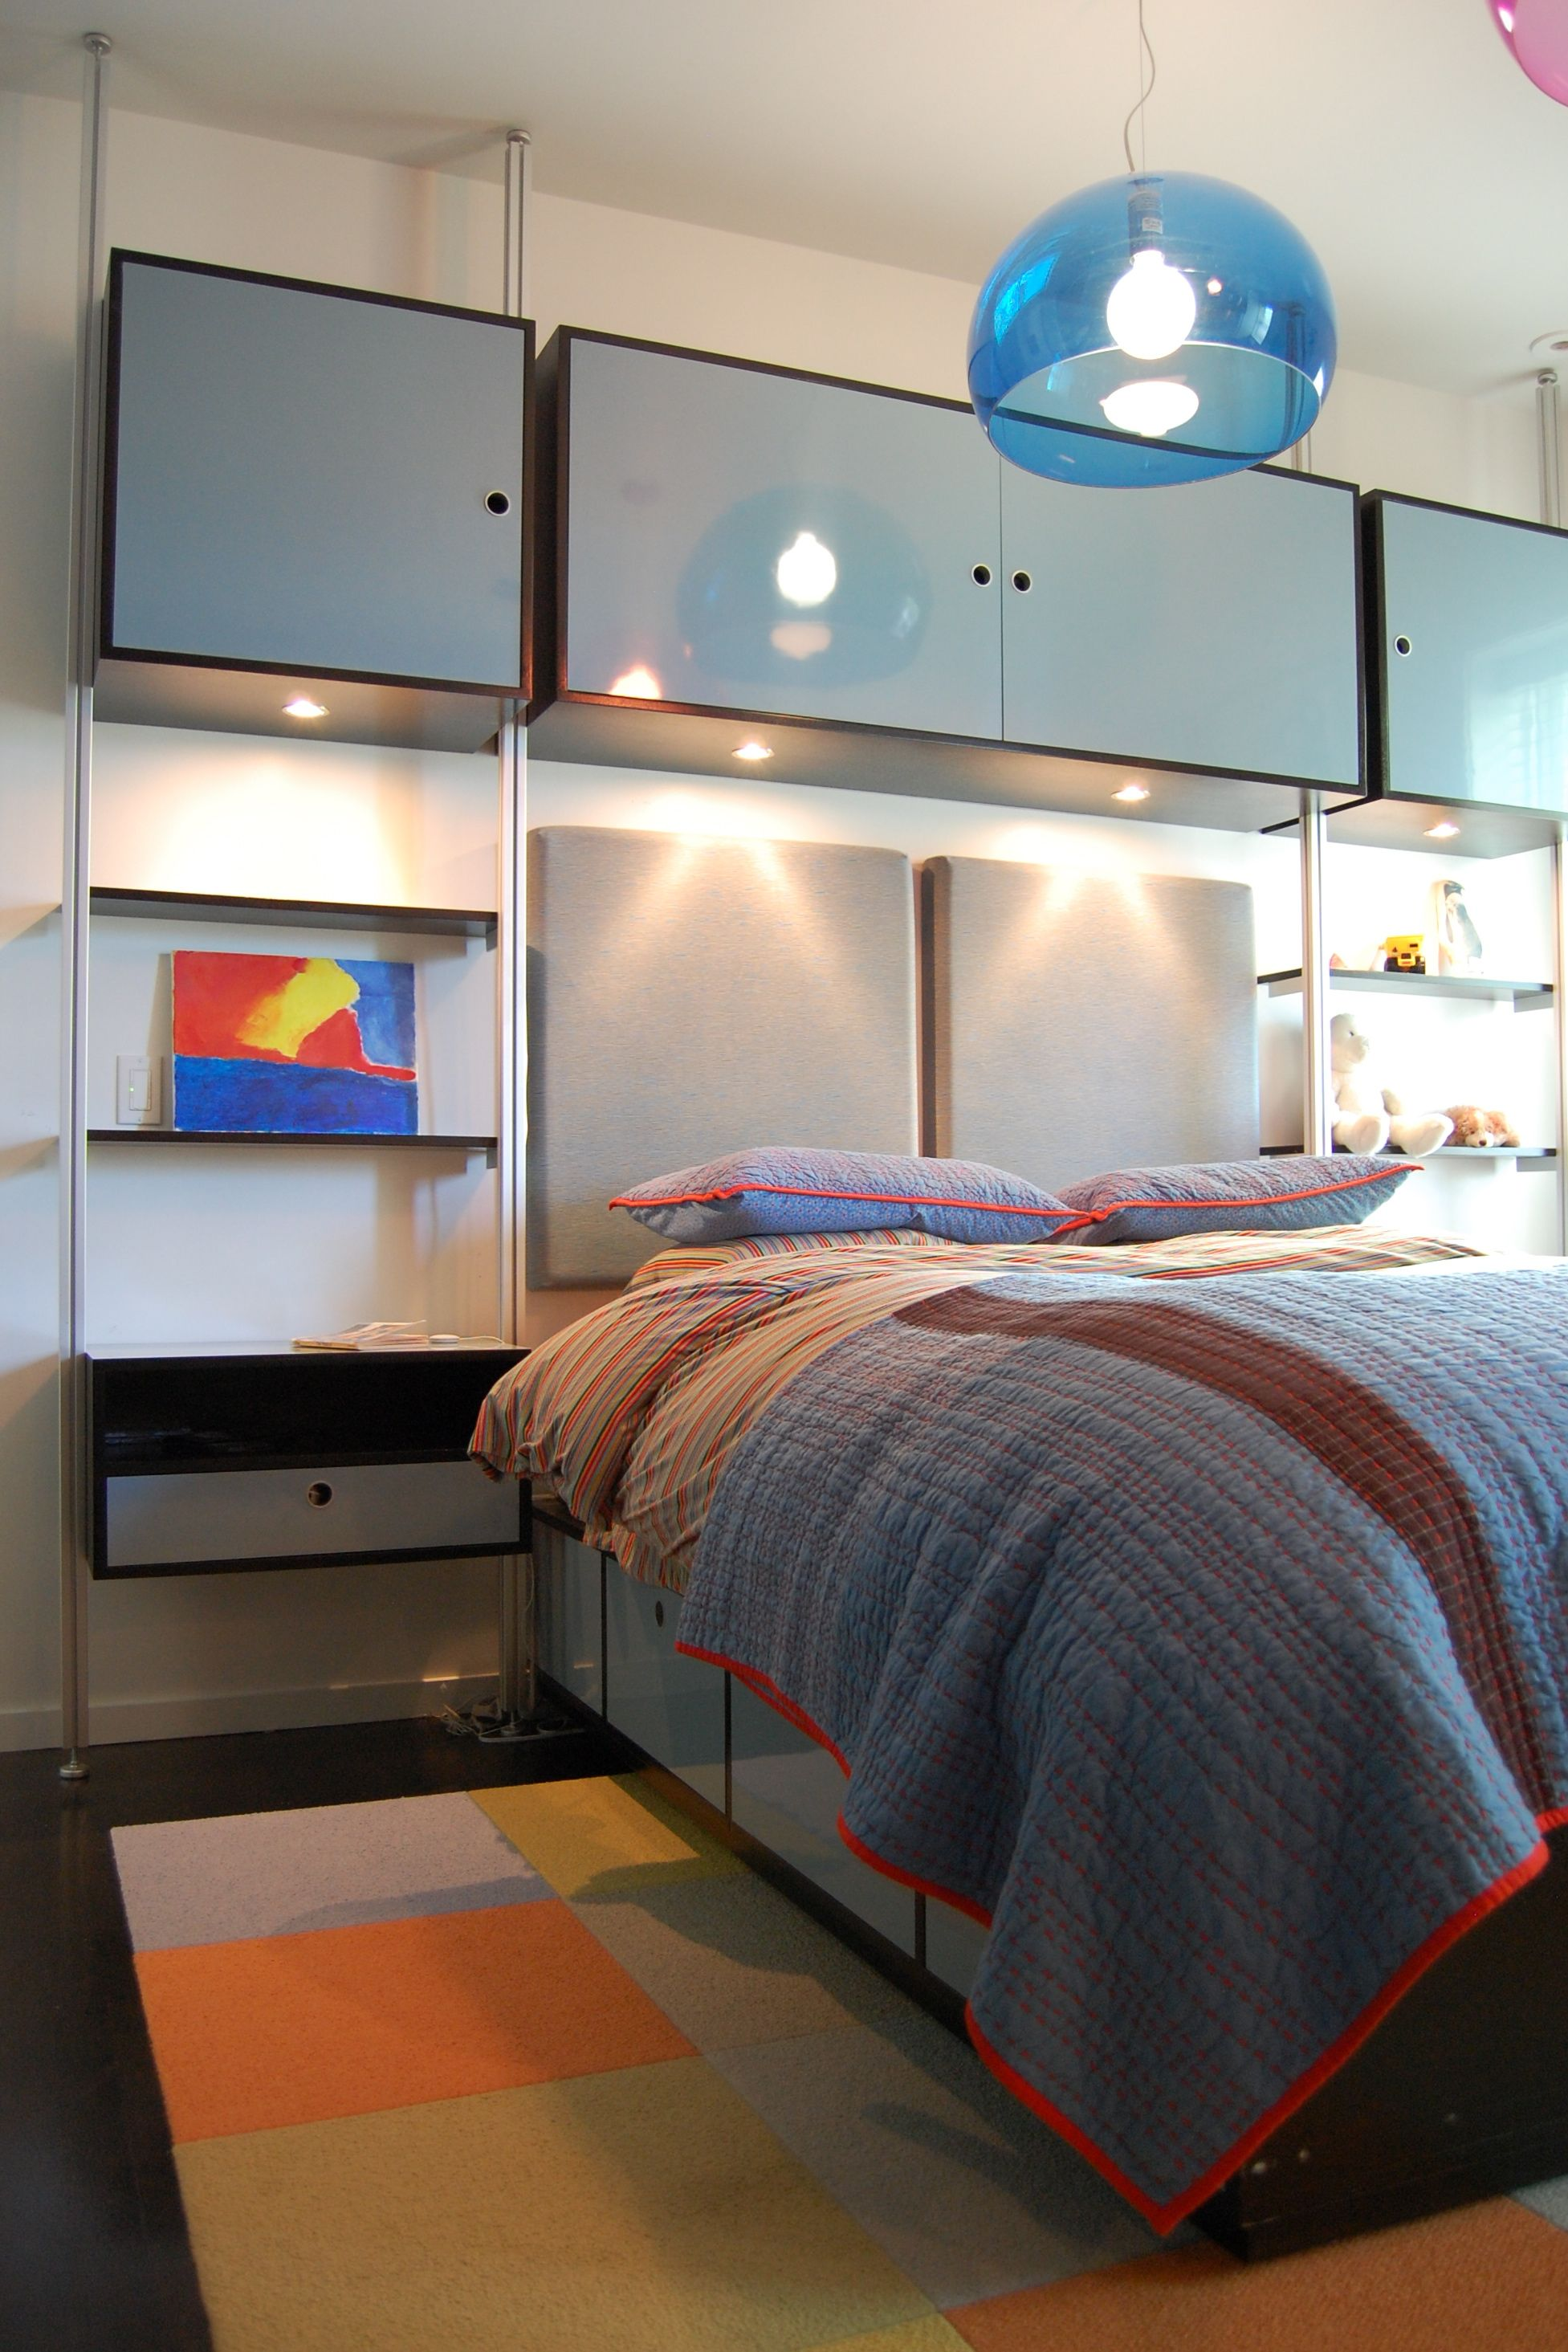 11 year old boys custom bedroom design including modular for Bedroom ideas 11 year old boy